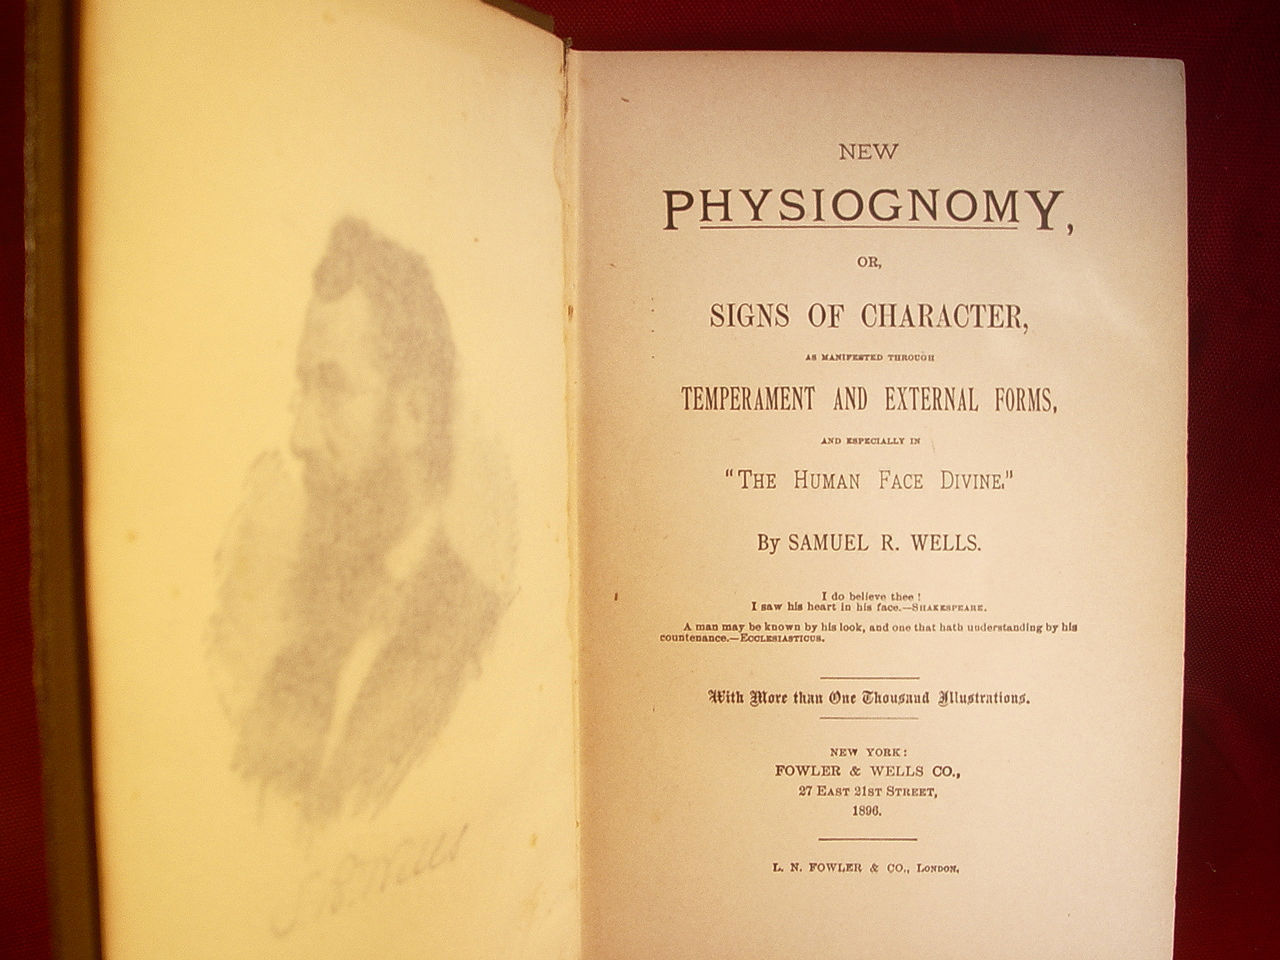 New Physiognomy or, Signs of Character by Samuel R. Wells 1896